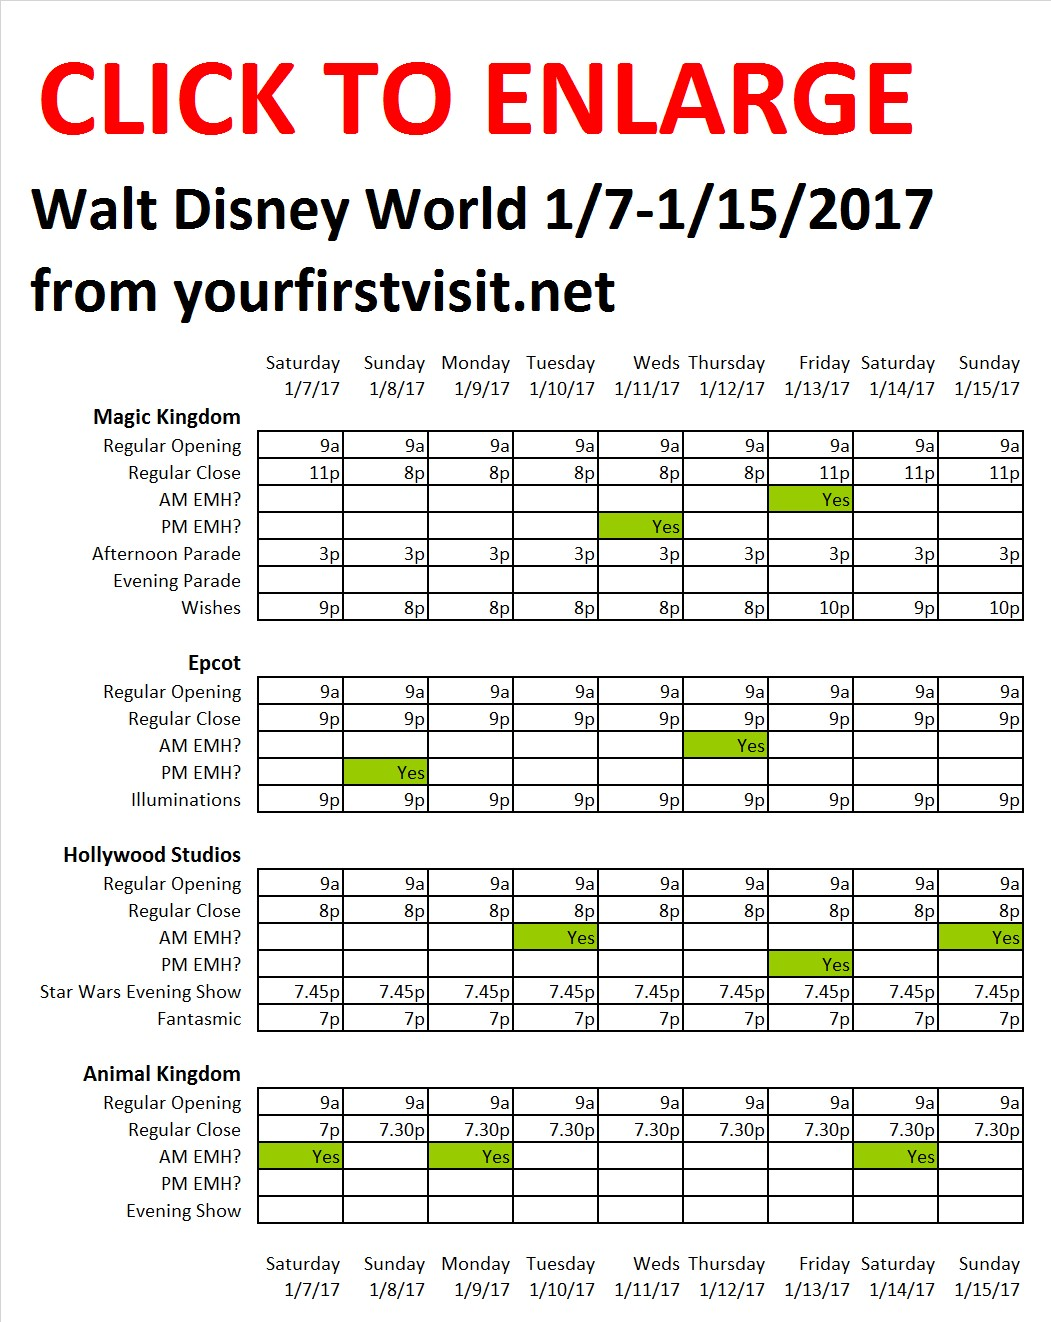 disney-world-1-7-to-1-15-2017-from-yourfirstvisit-net